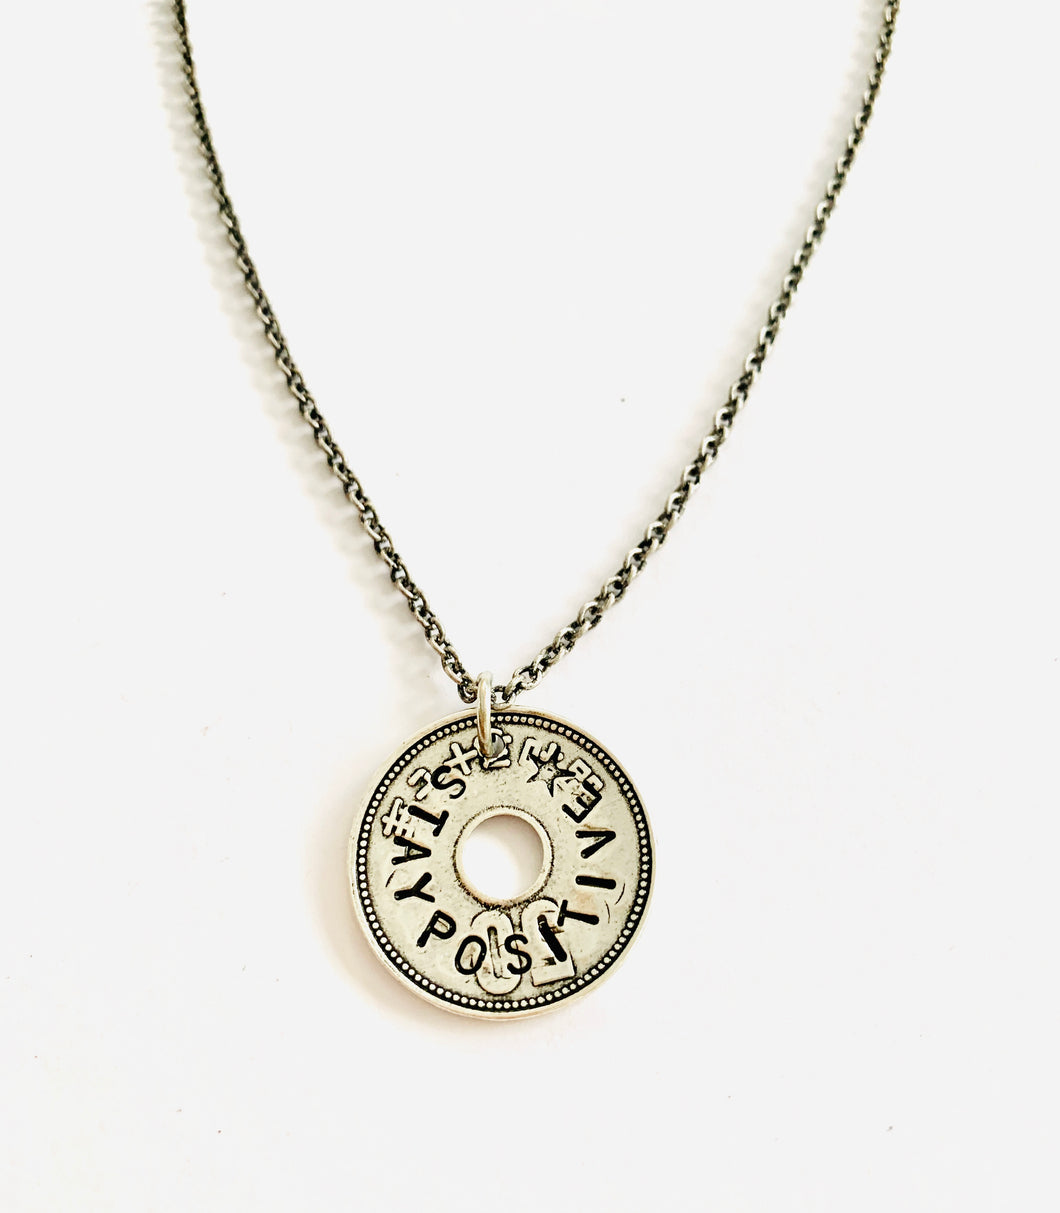 Stay Positive/ Have Strength Necklace